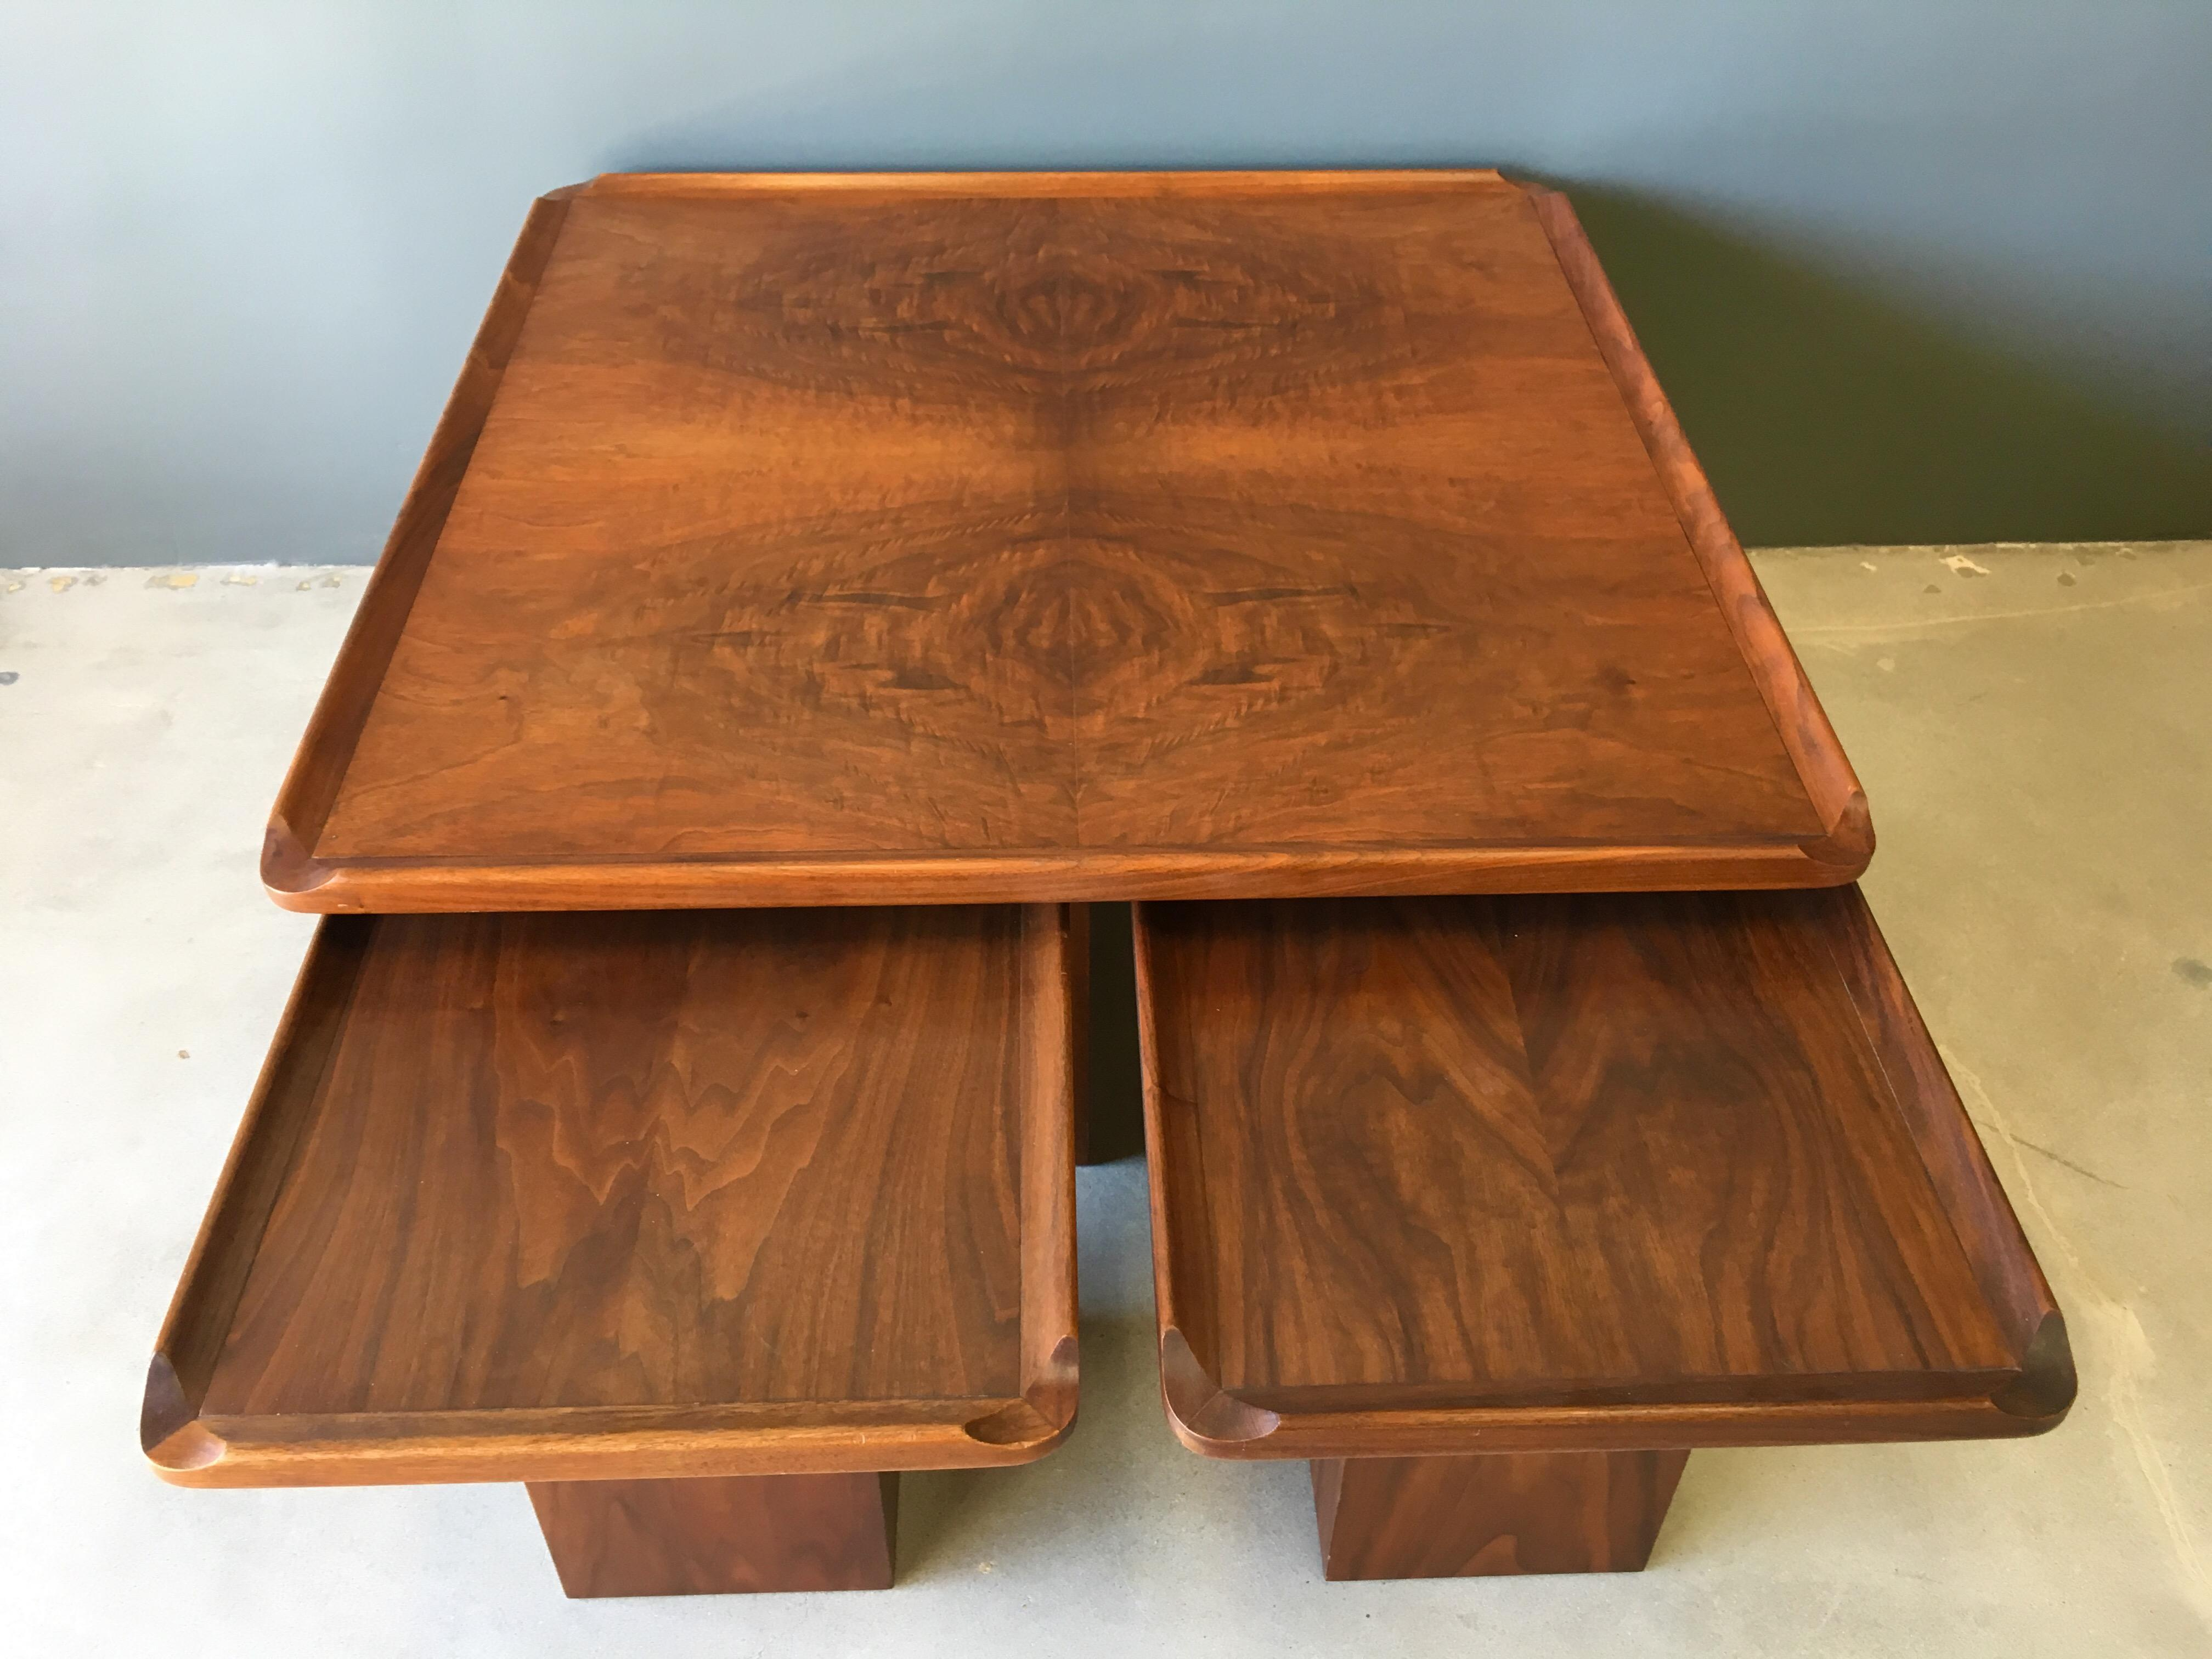 Delicieux Brown Saltman Mid Century Coffee U0026 Nesting Tables   5 Pieces   Image 9 Of